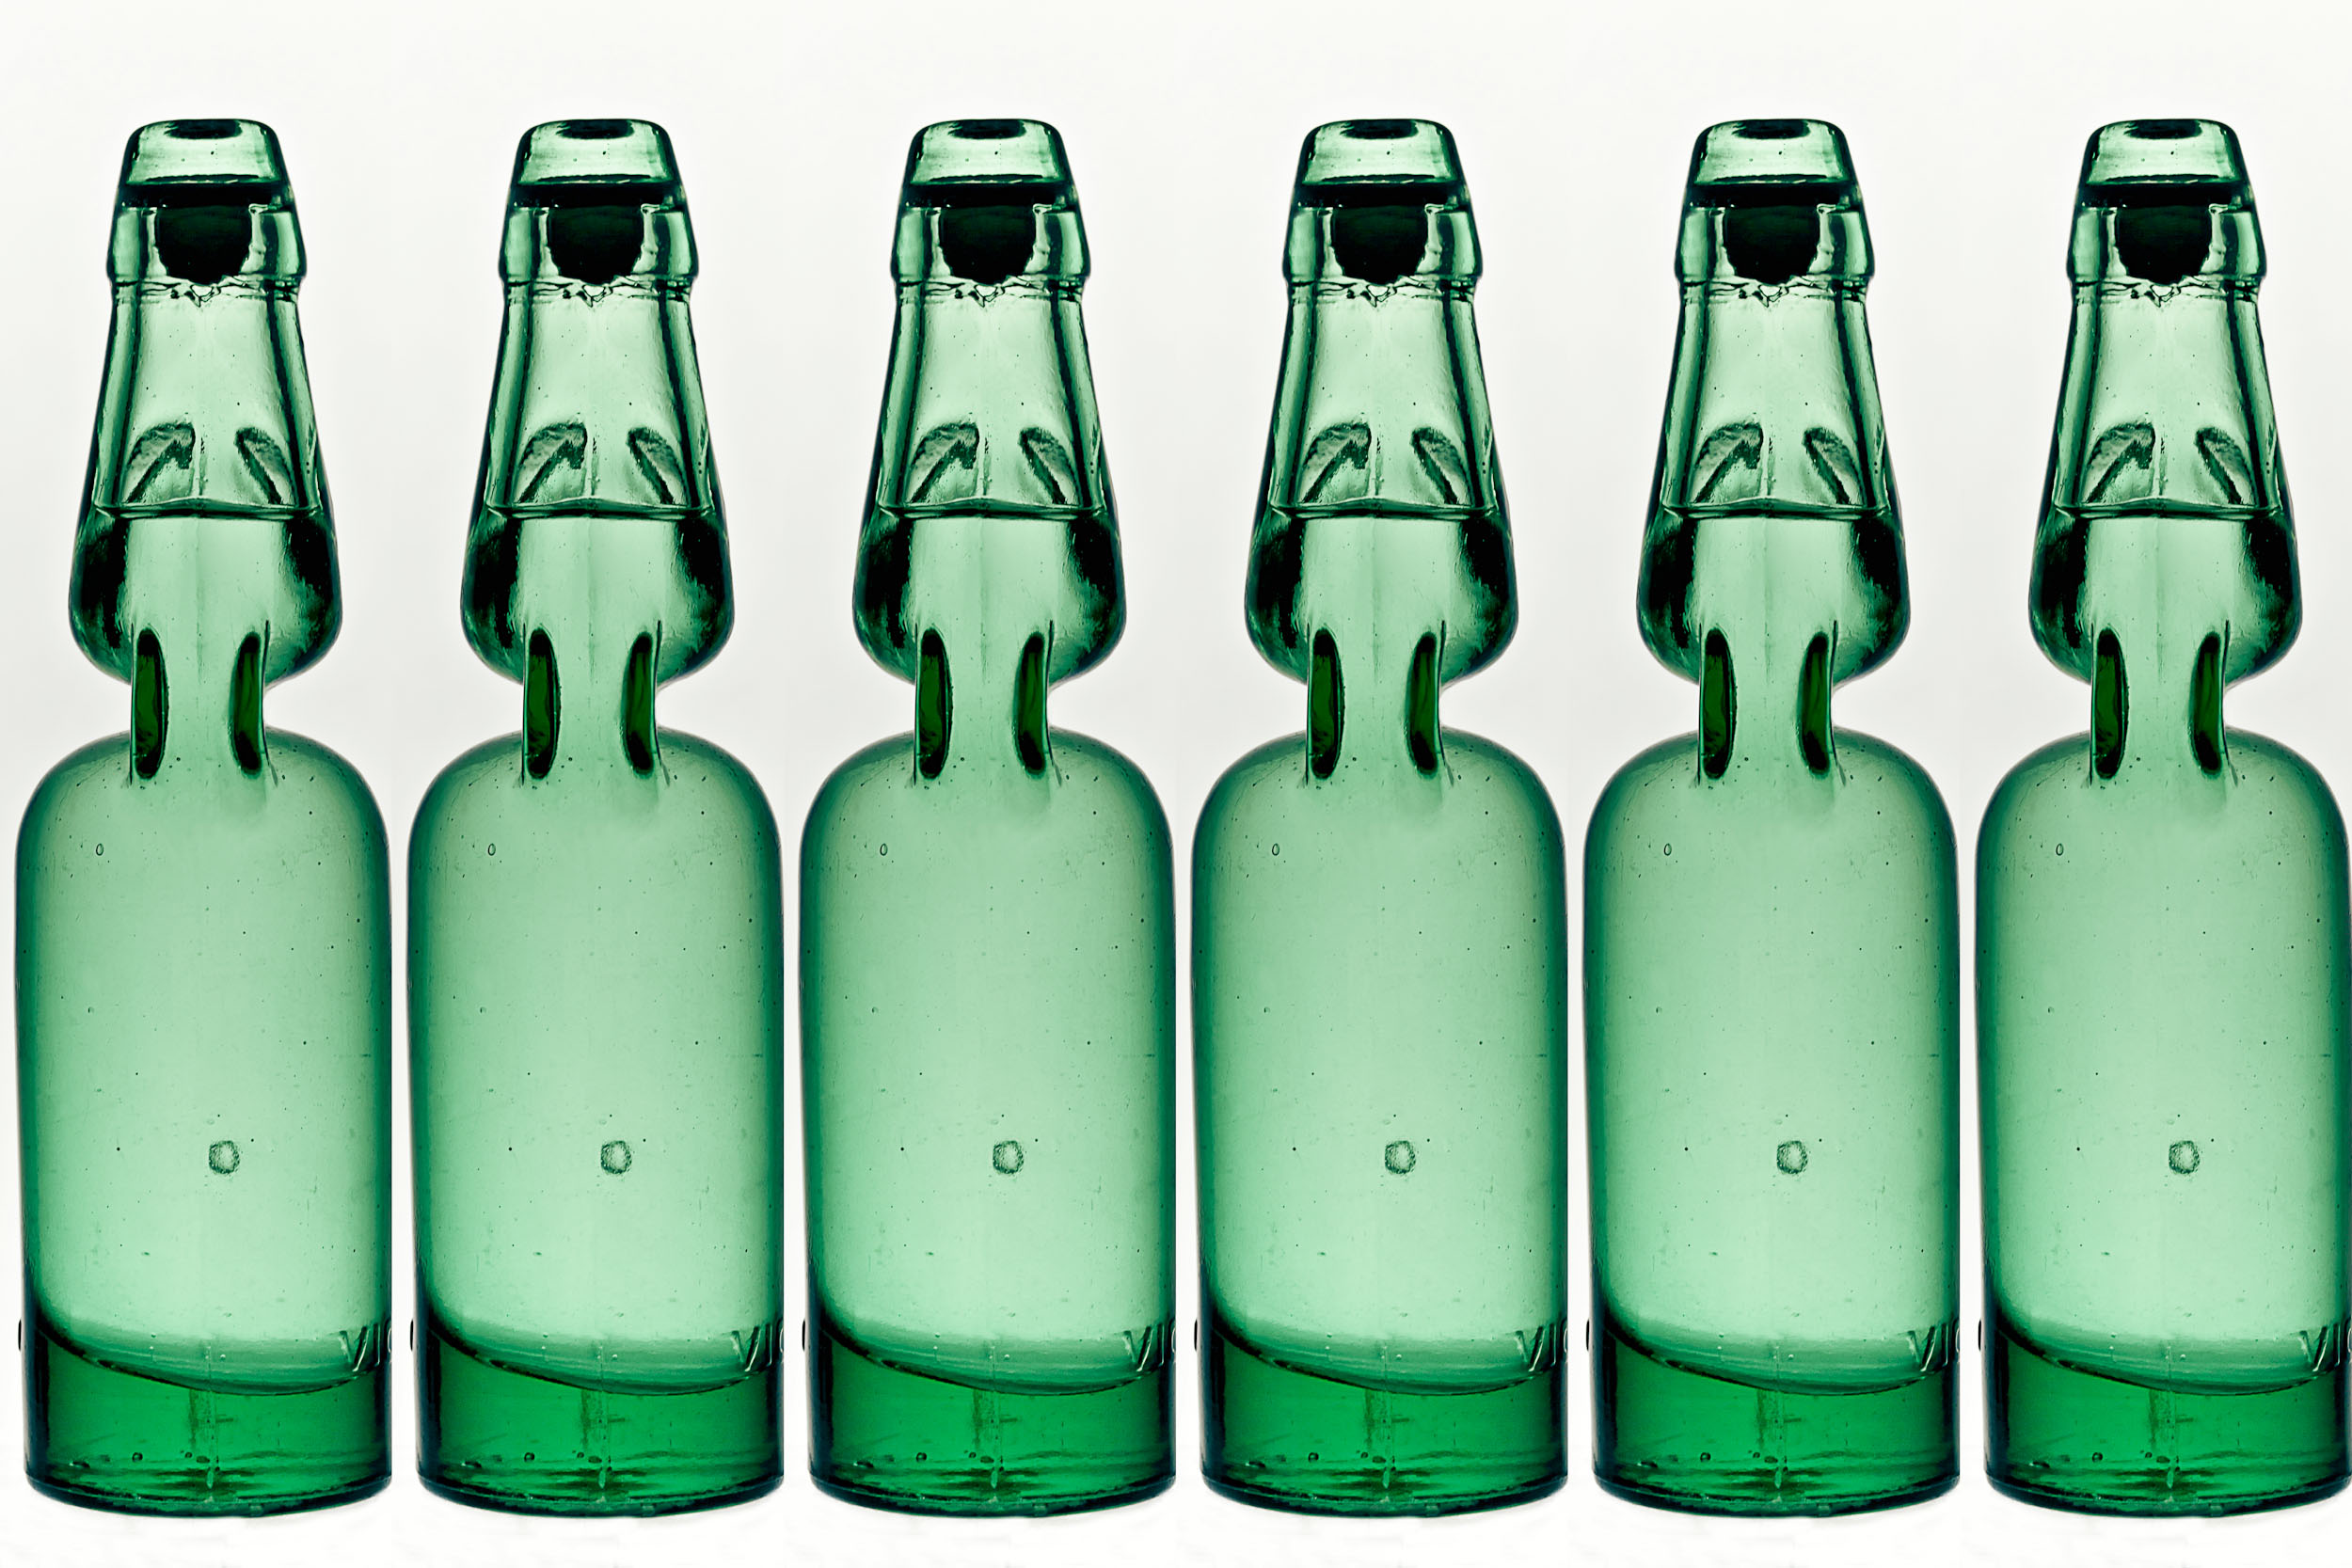 Sindhur_Photography_Perspectives_Product_Golisoda_Soda_2.JPG